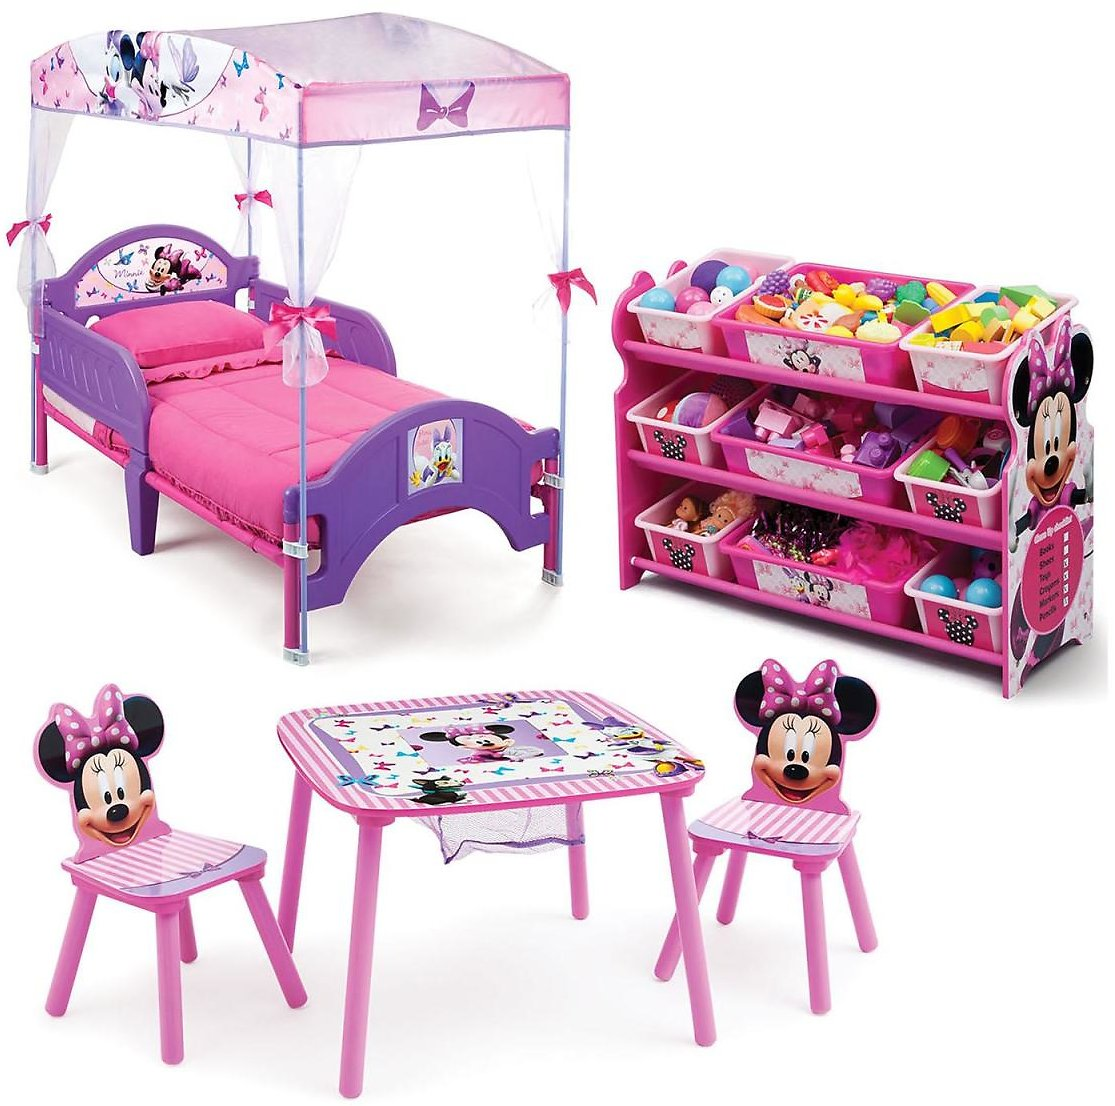 Delta Children Minnie Mouse 3-Piece Toddler Canopy Bedroom Set - Sam's Club